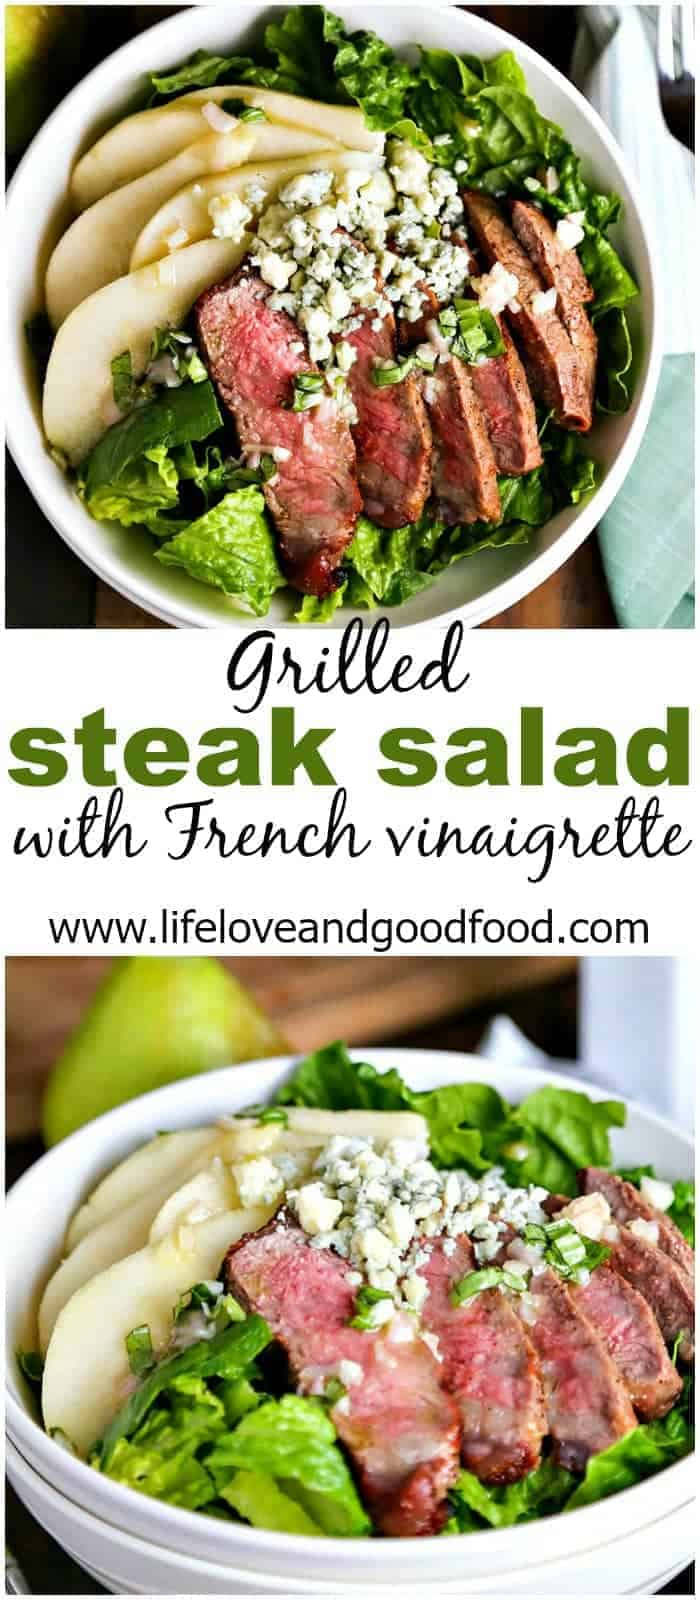 A lite French Vinaigrette works perfectly with the tender grilled steak, juicy pears, and blue cheese on this entrée salad.